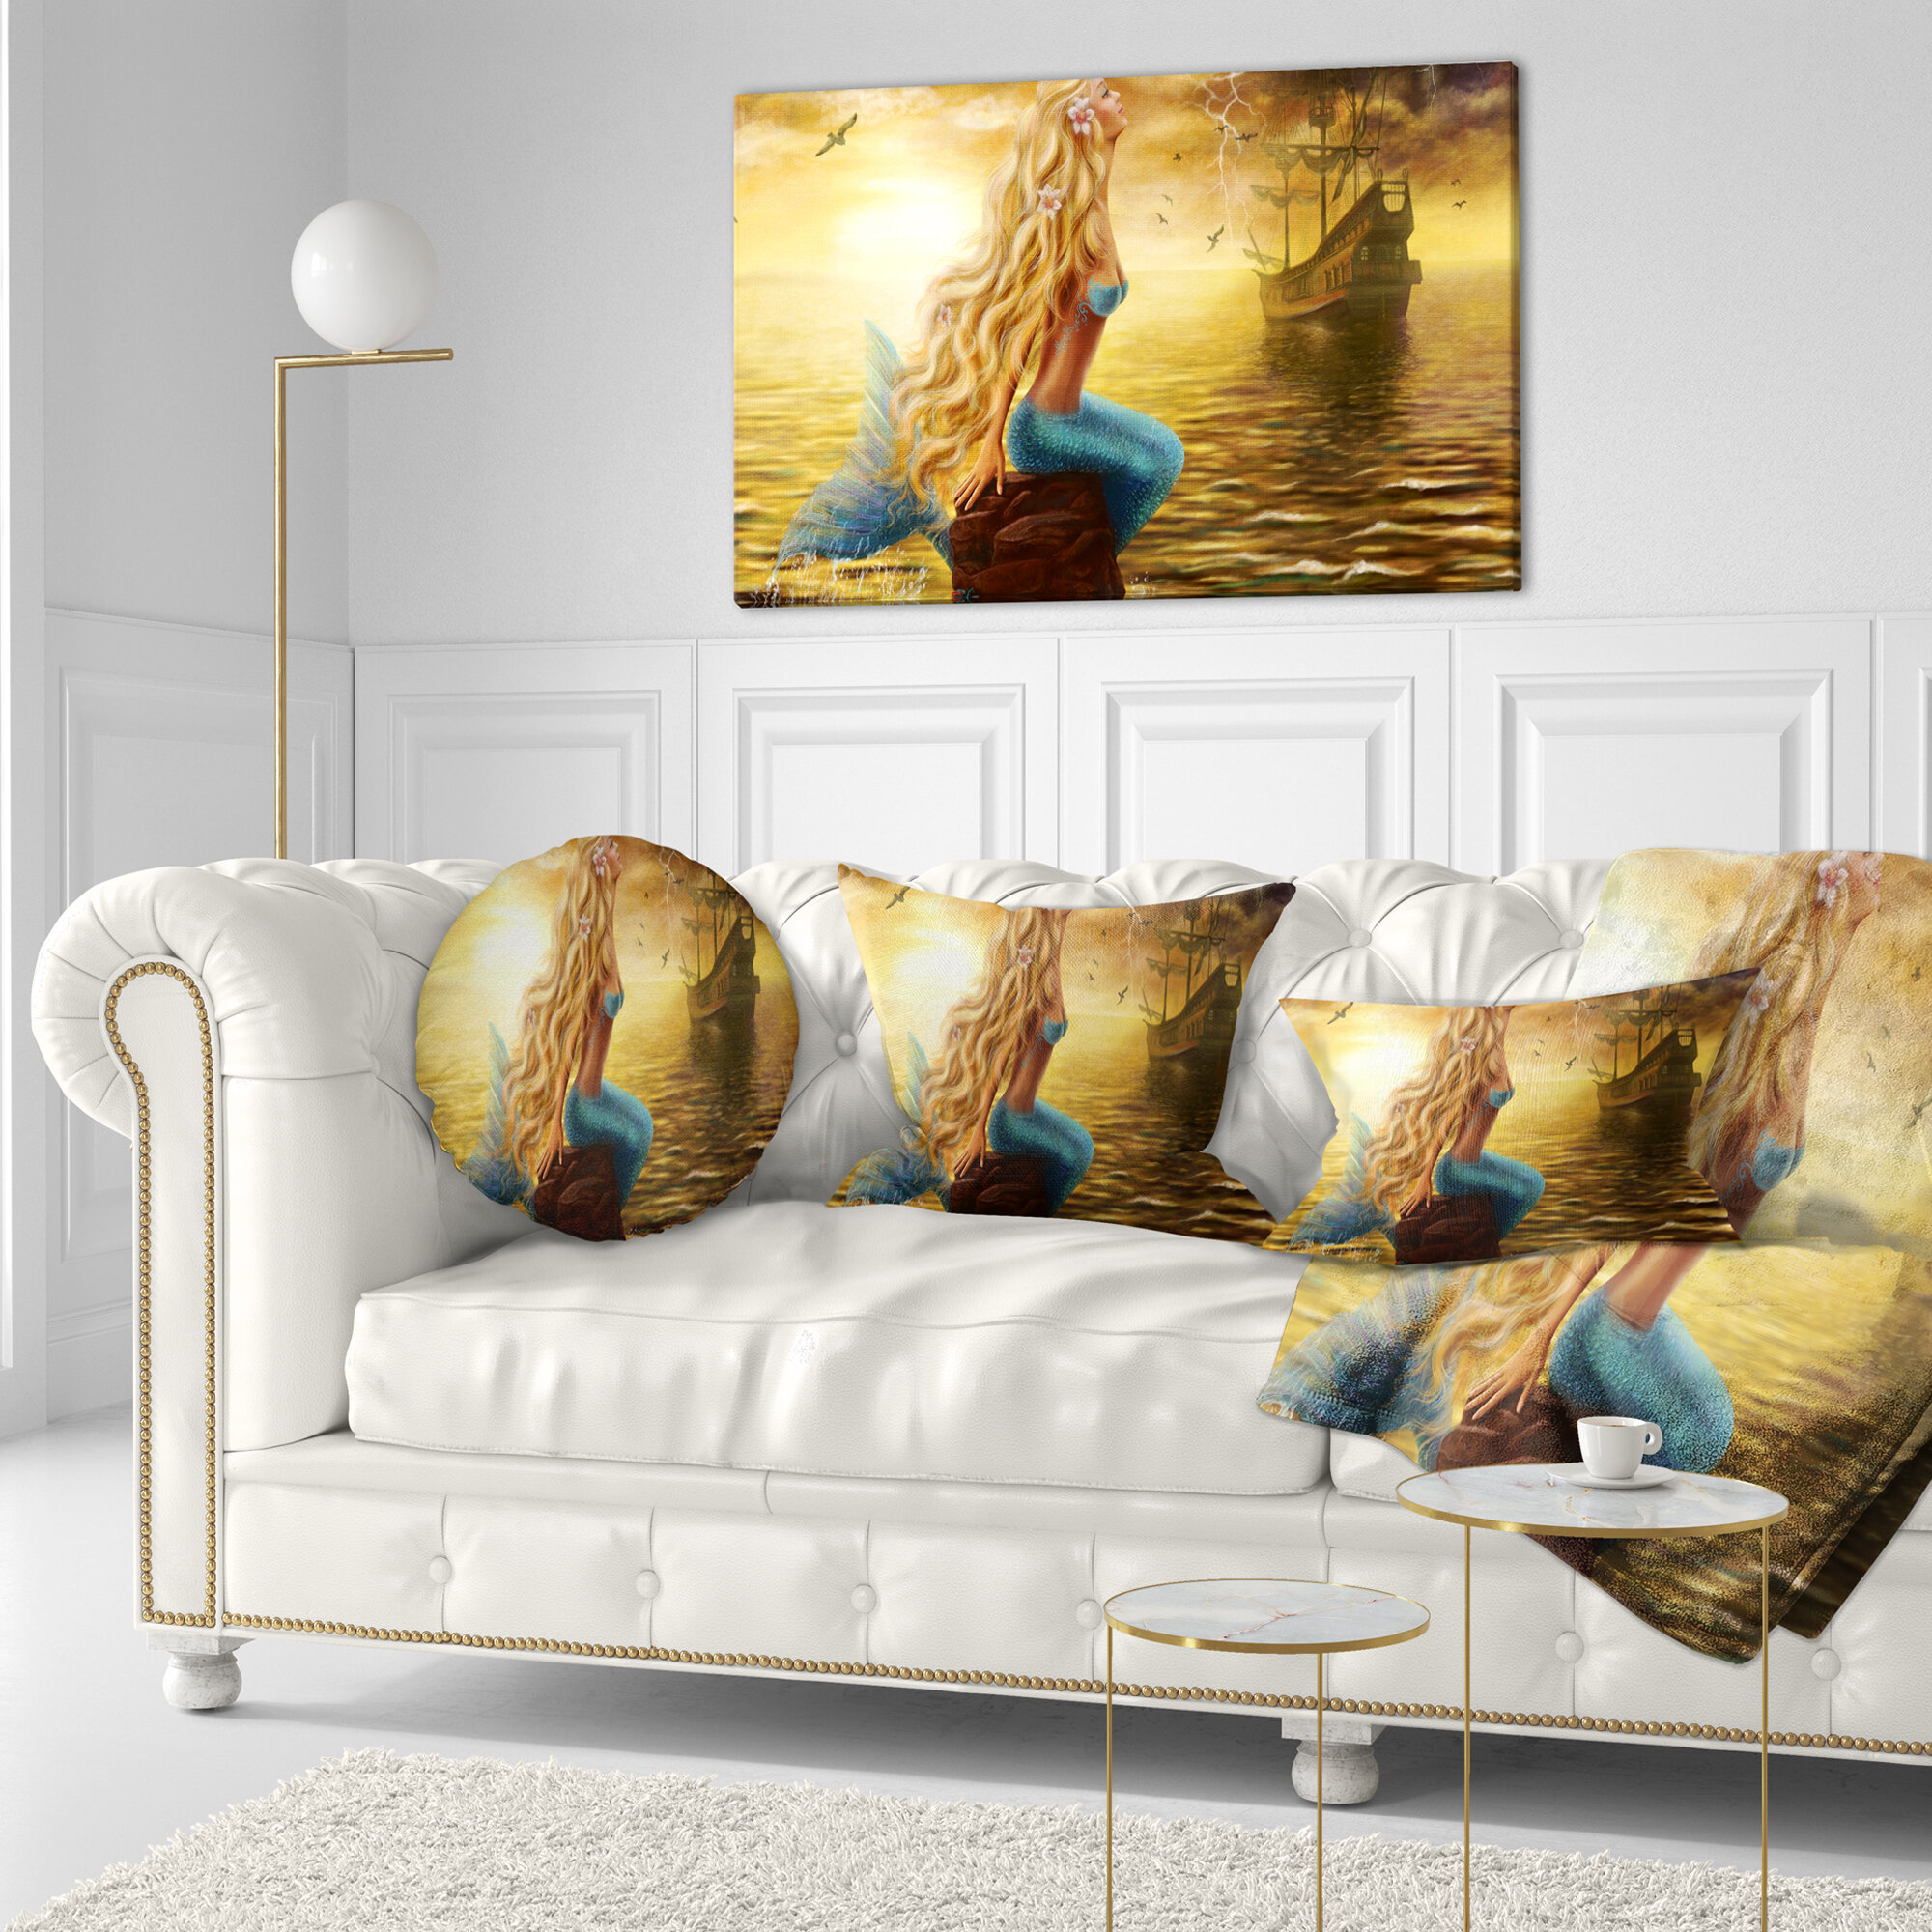 East Urban Home Designart Sea Mermaid With Ghost Ship Seascape